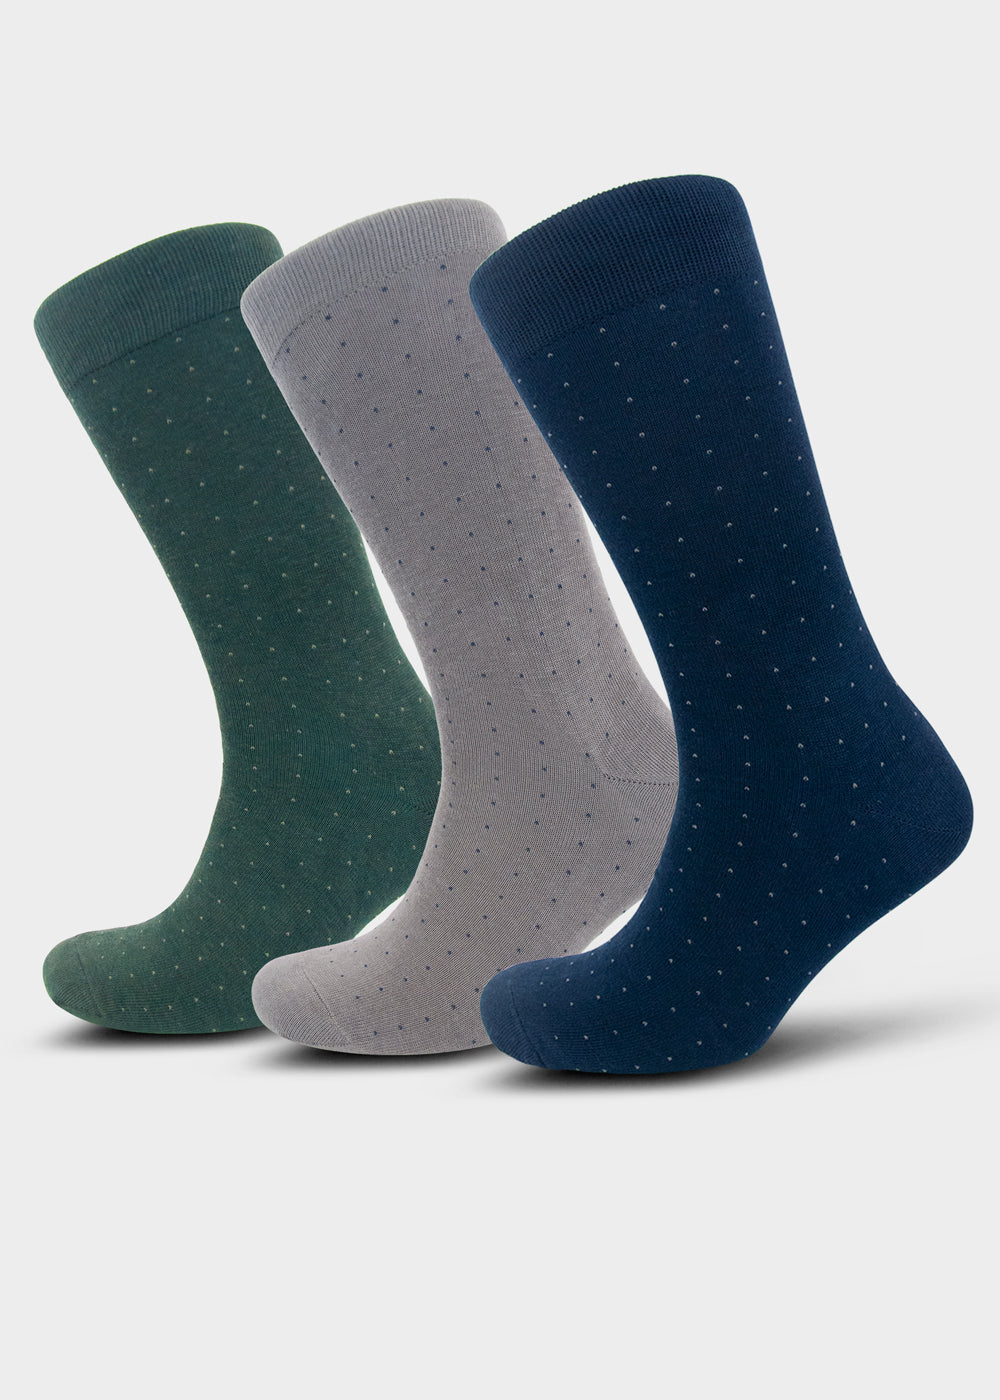 William Hunt Savile Row Men's Blue, Green and Grey Polka Dot Socks